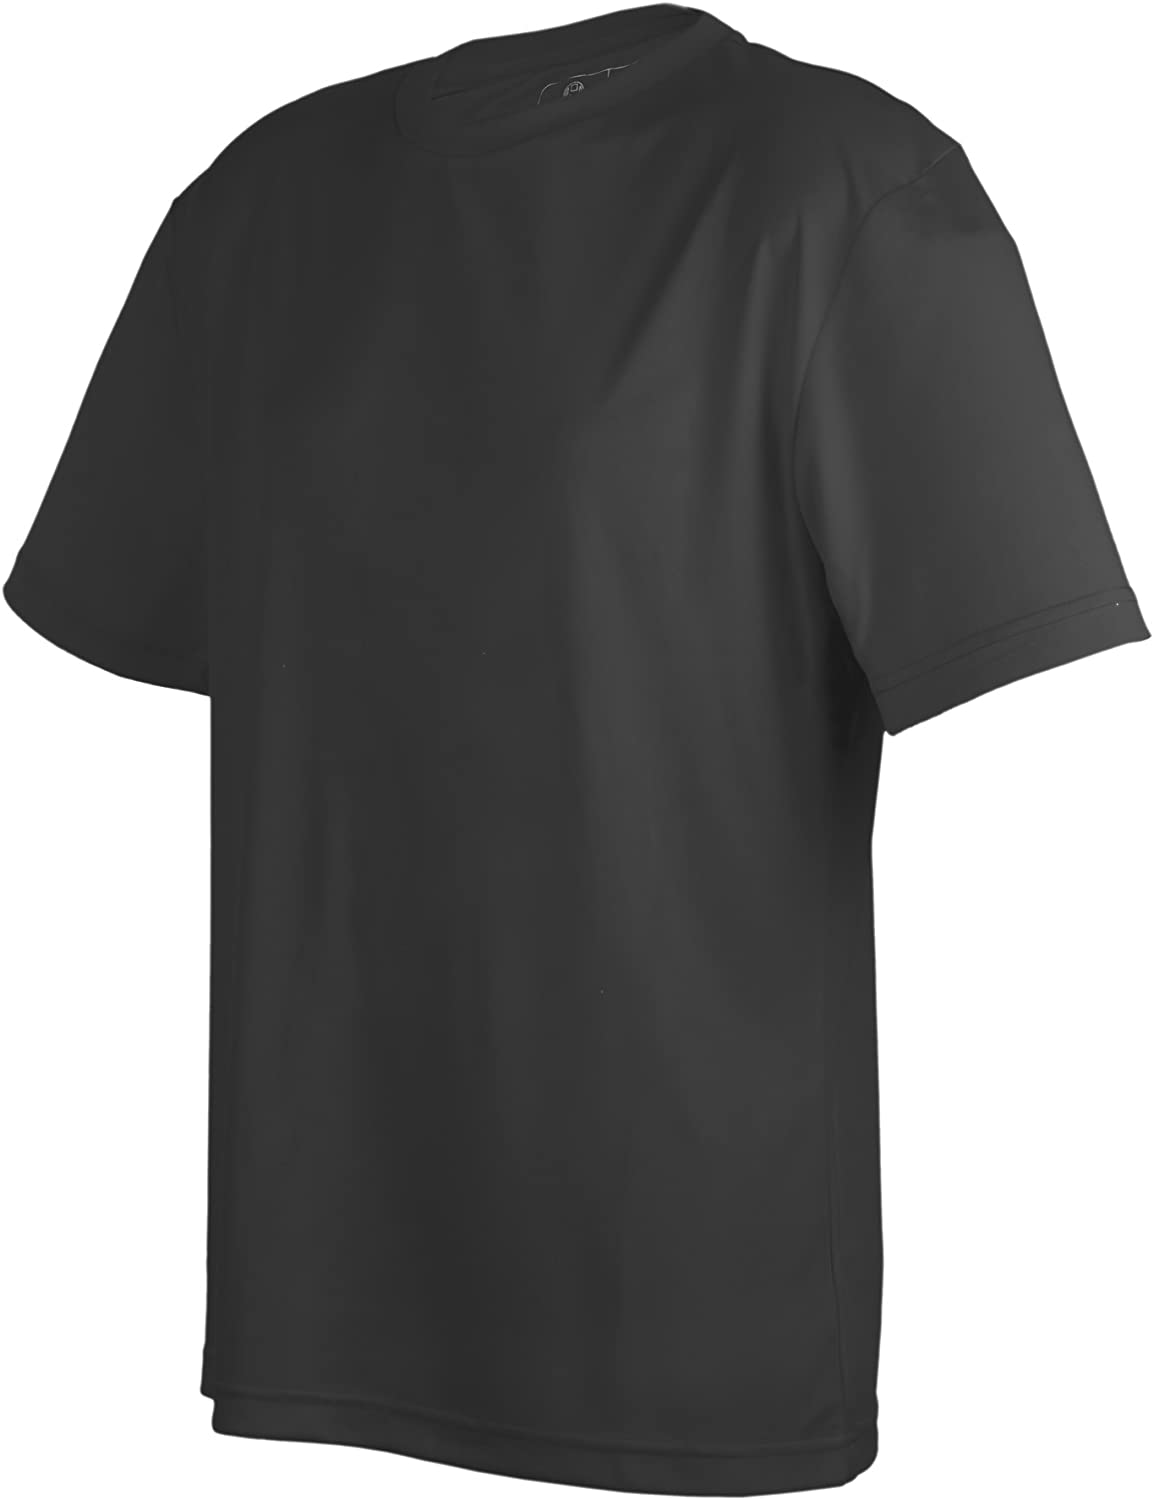 Mato & Hash Workout Shirts for Men | Moisture Wicking Shirts, Breathable Build